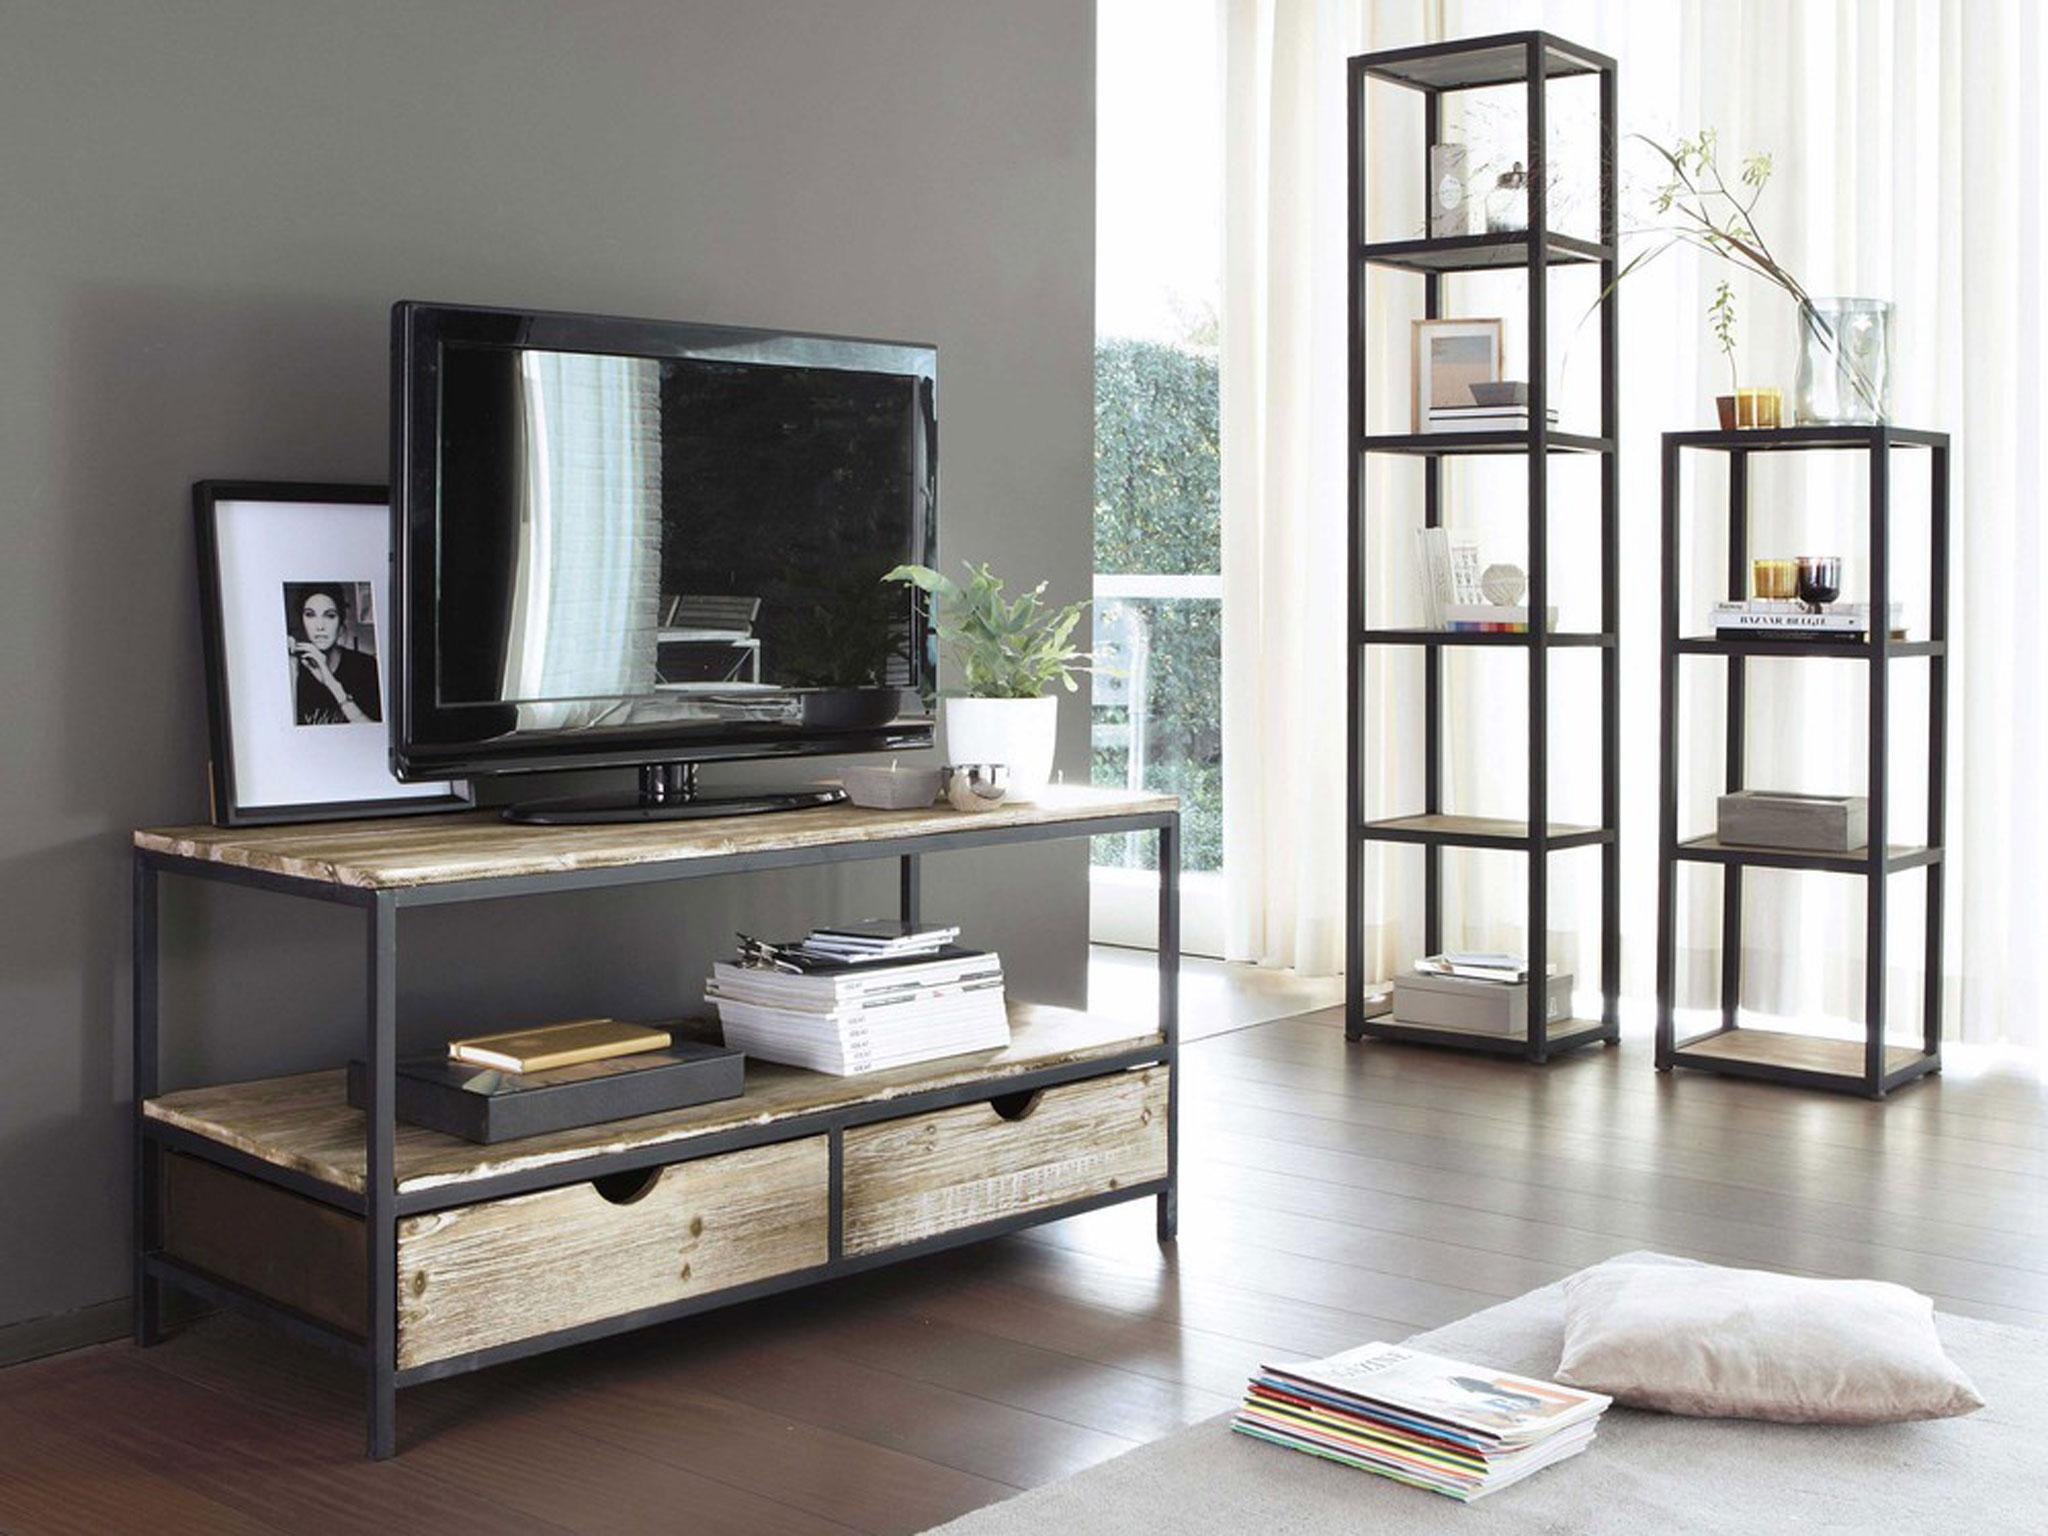 10 Best Tv Stands | The Independent Regarding Century White 60 Inch Tv Stands (View 11 of 30)